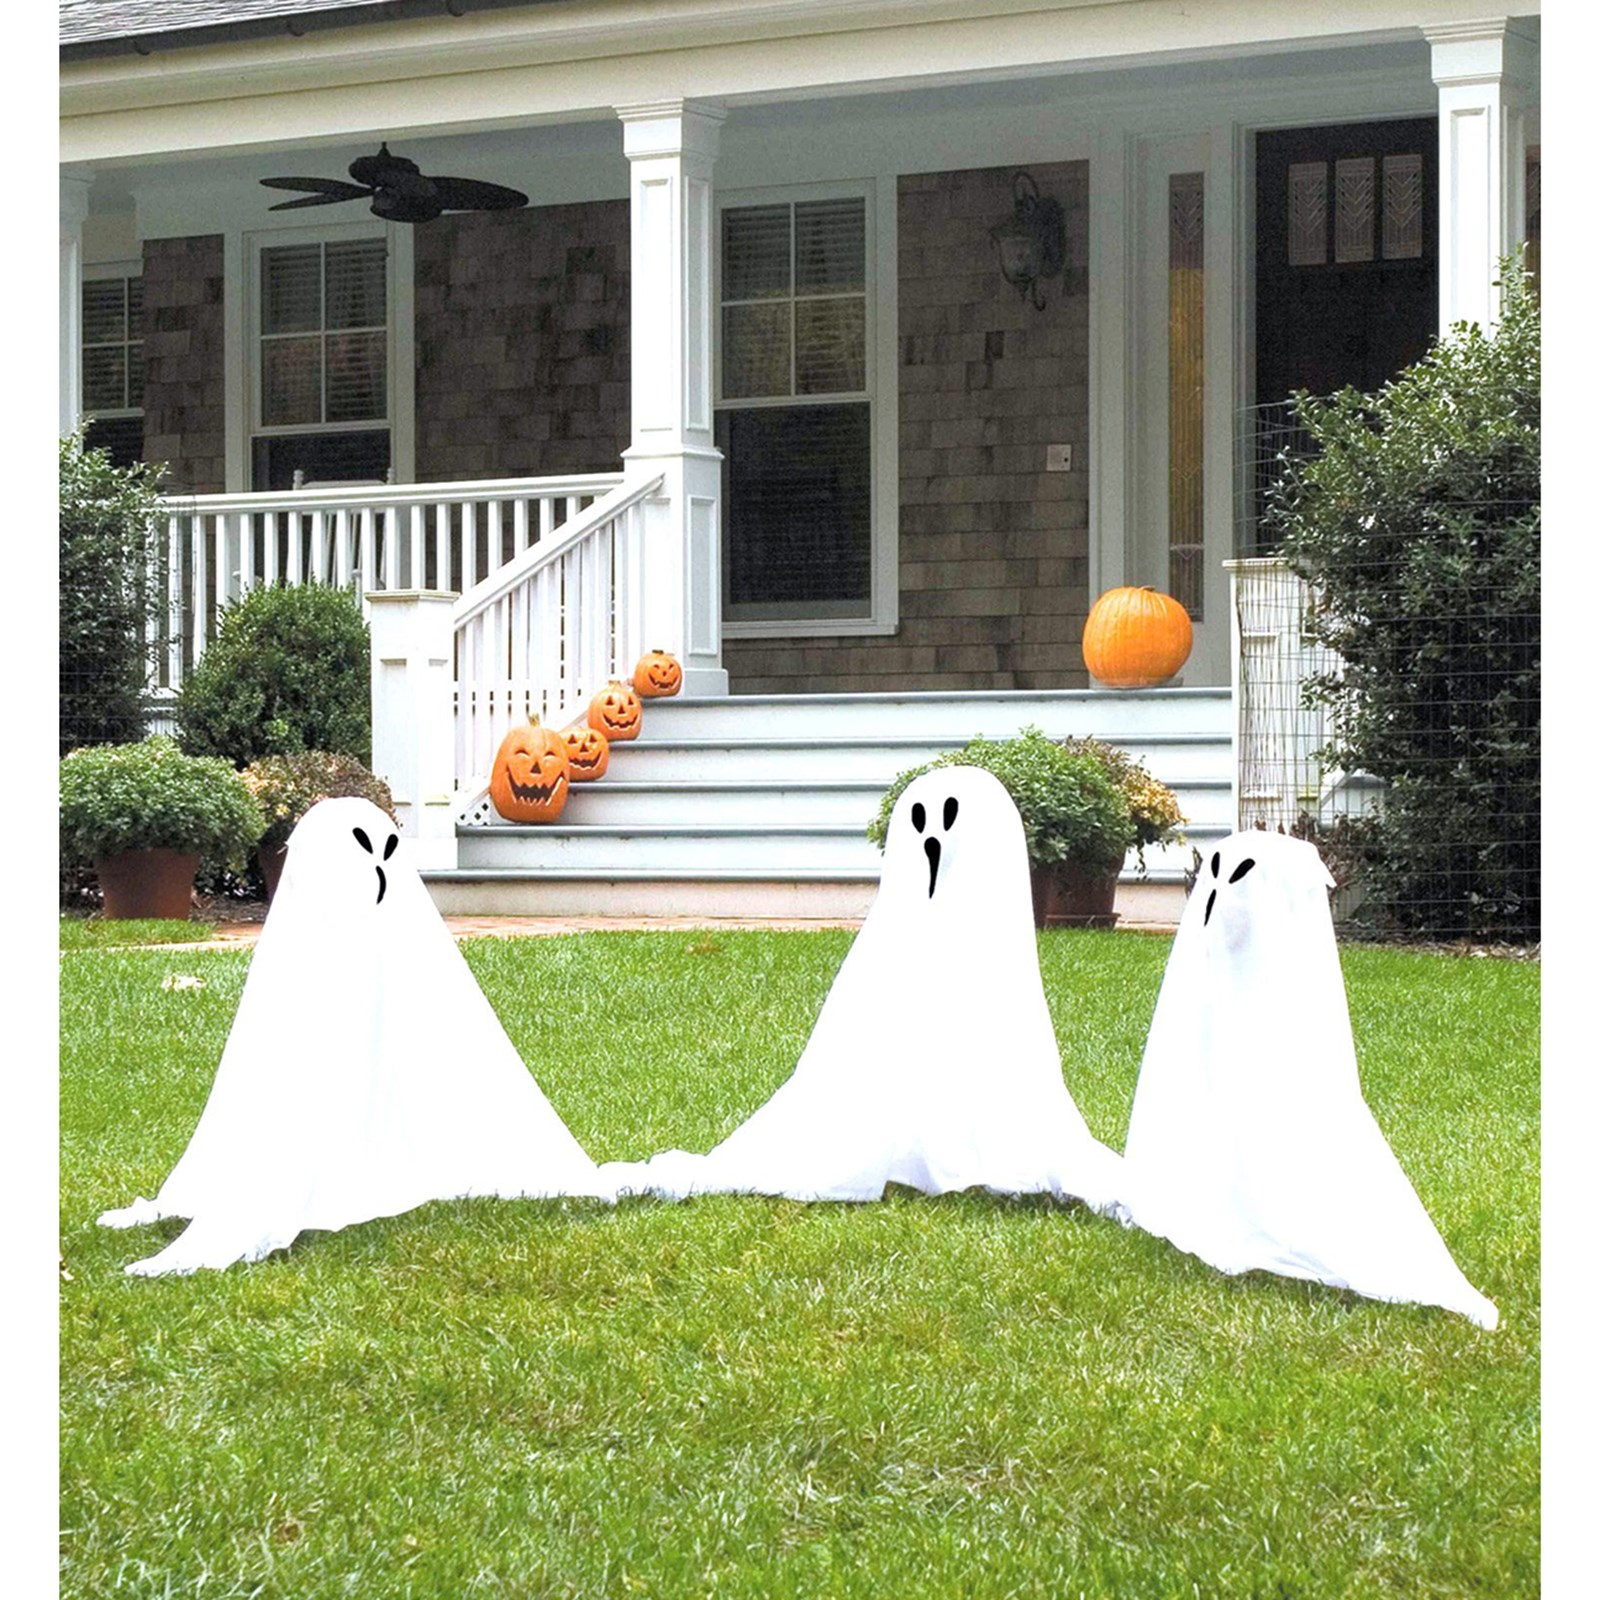 Group of Spooky Ghost Lawn Props